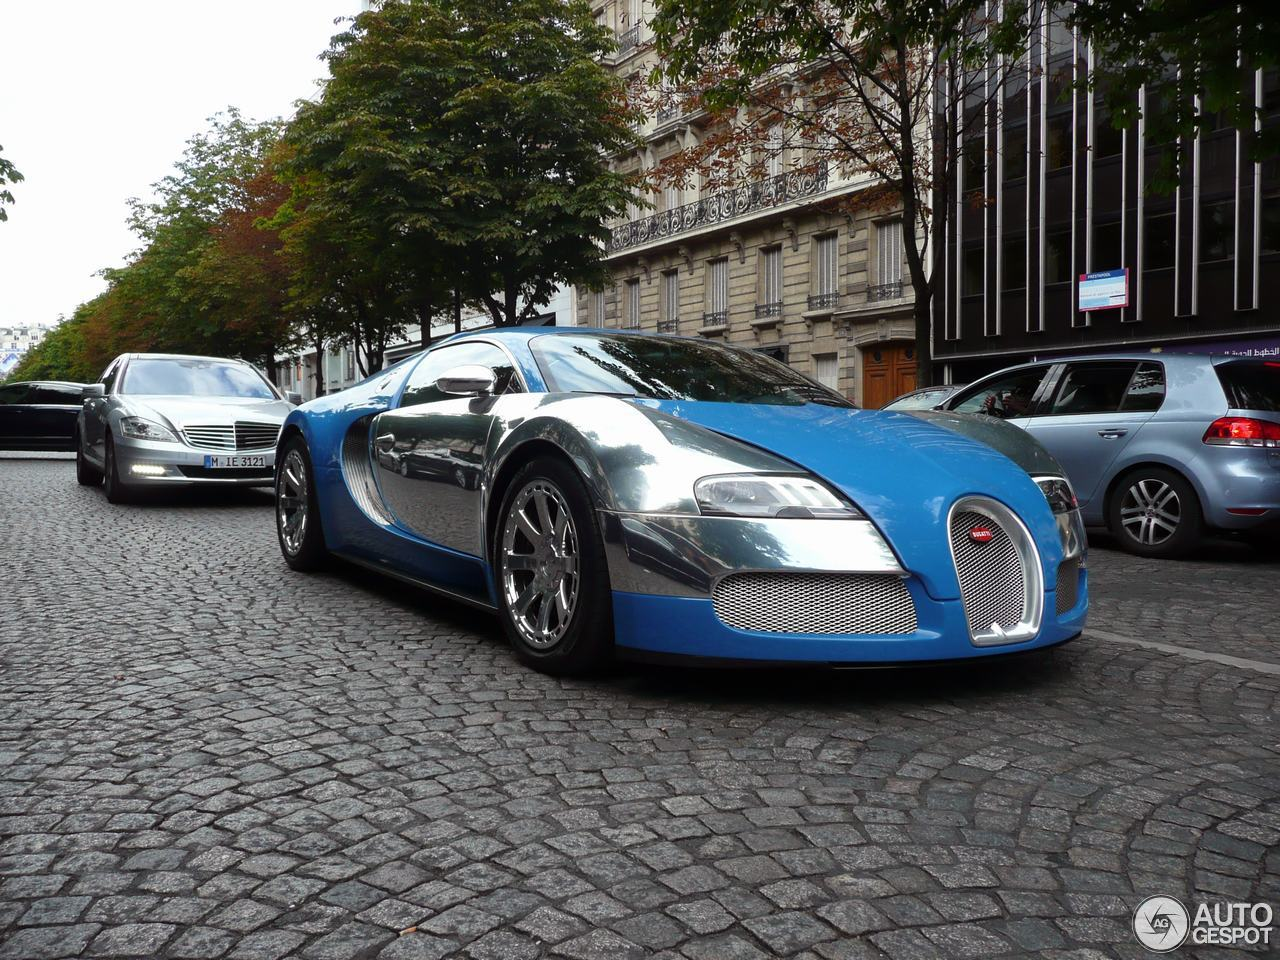 bugatti veyron official website 2006 bugatti veyron pictures cargurus bugatti veyron. Black Bedroom Furniture Sets. Home Design Ideas